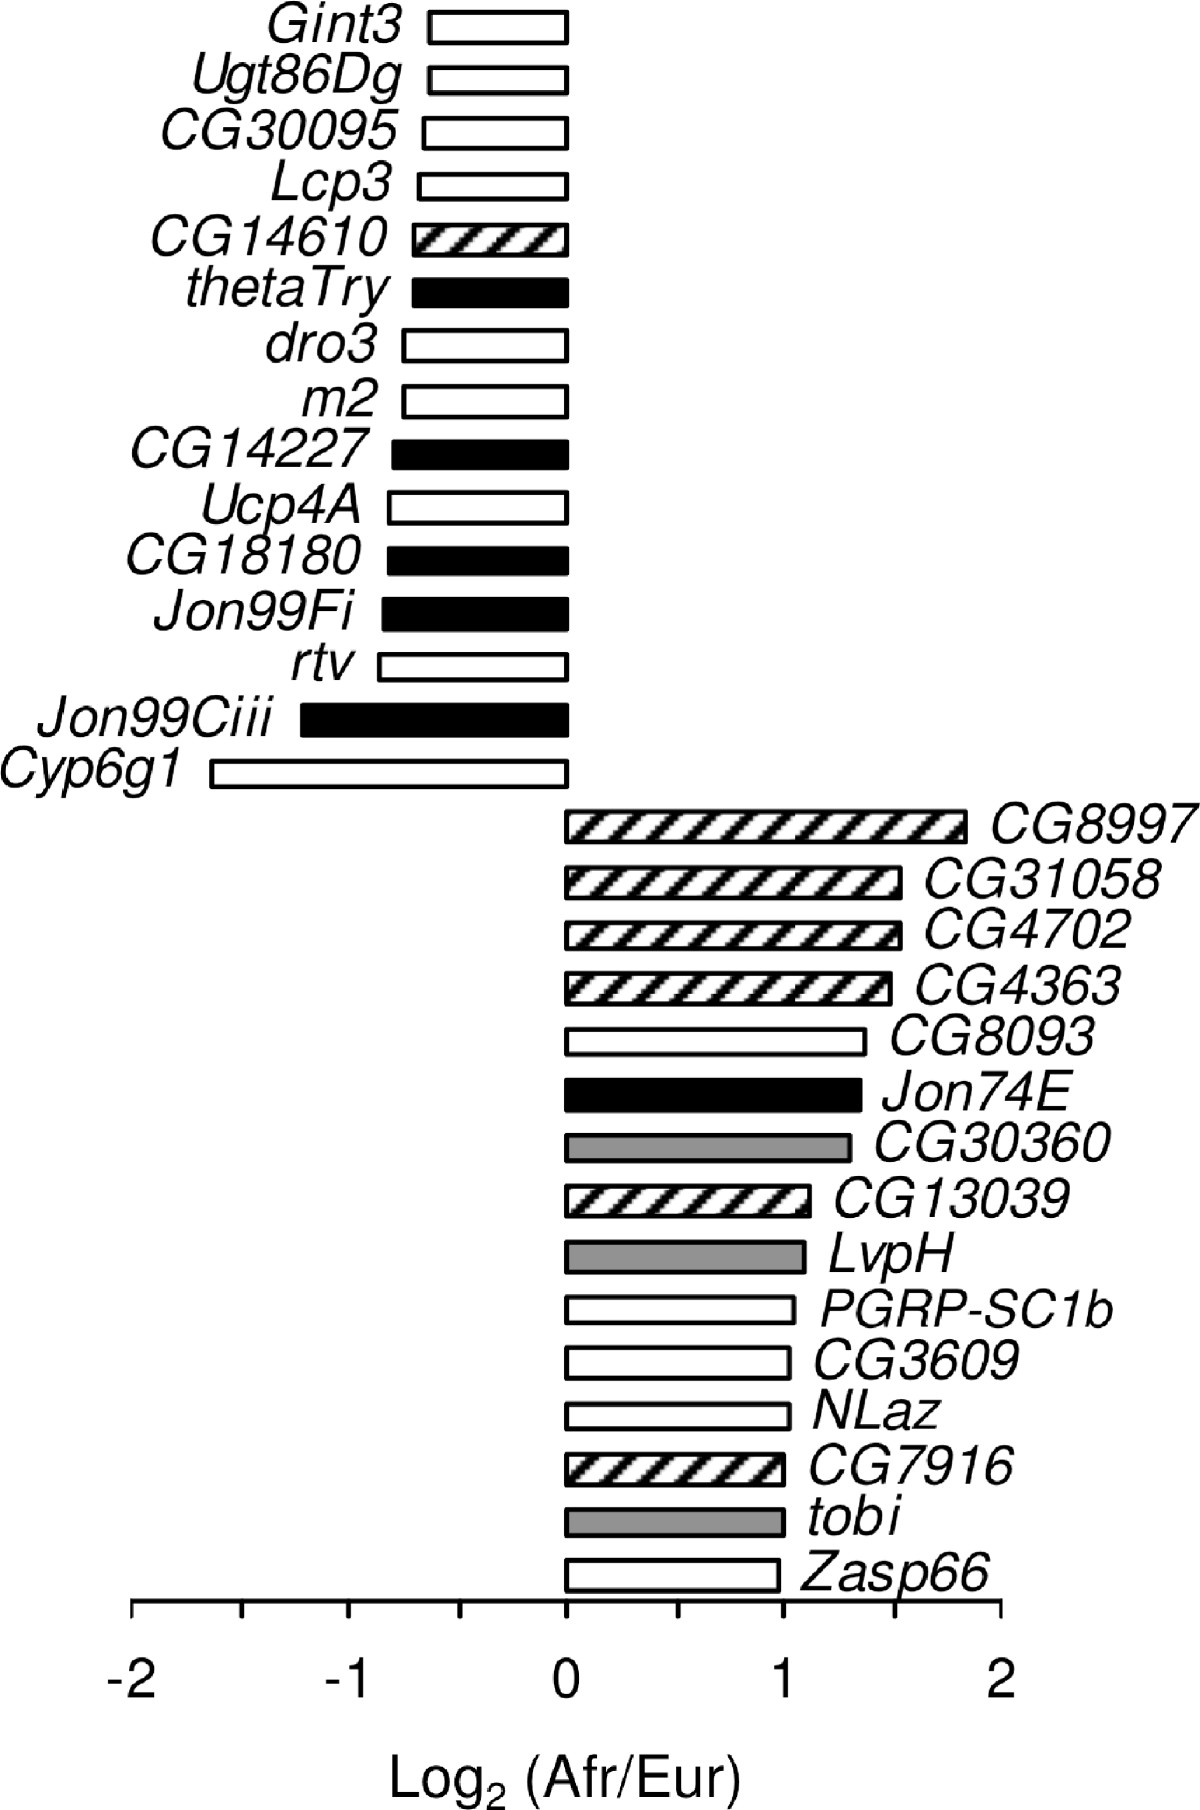 http://static-content.springer.com/image/art%3A10.1186%2F1471-2164-12-81/MediaObjects/12864_2010_3212_Fig3_HTML.jpg